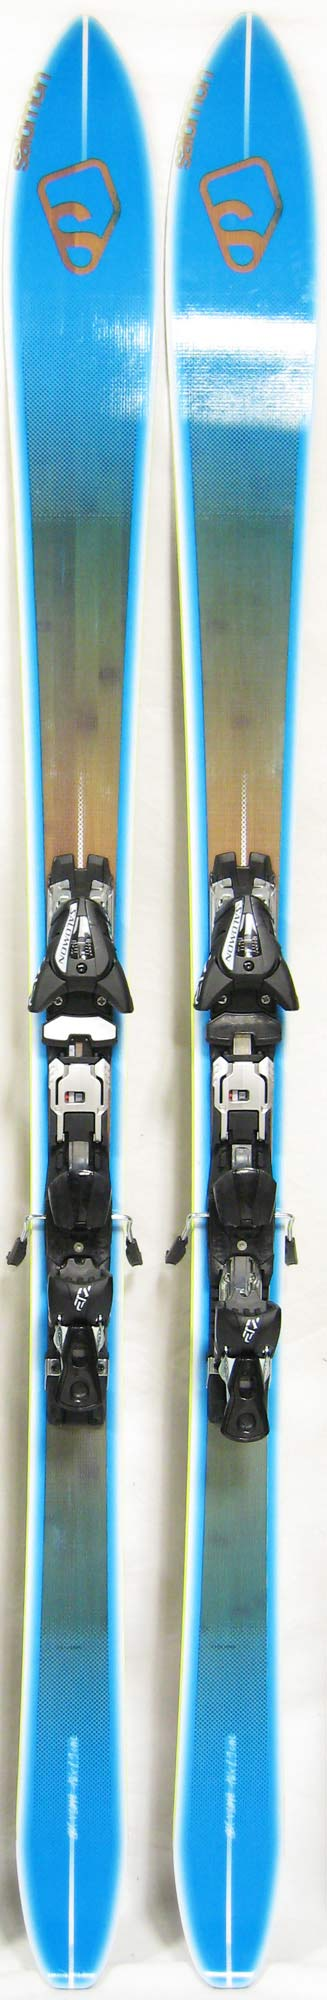 Topsheets of 2012 Salomon BBR 8.9 Skis For Sale